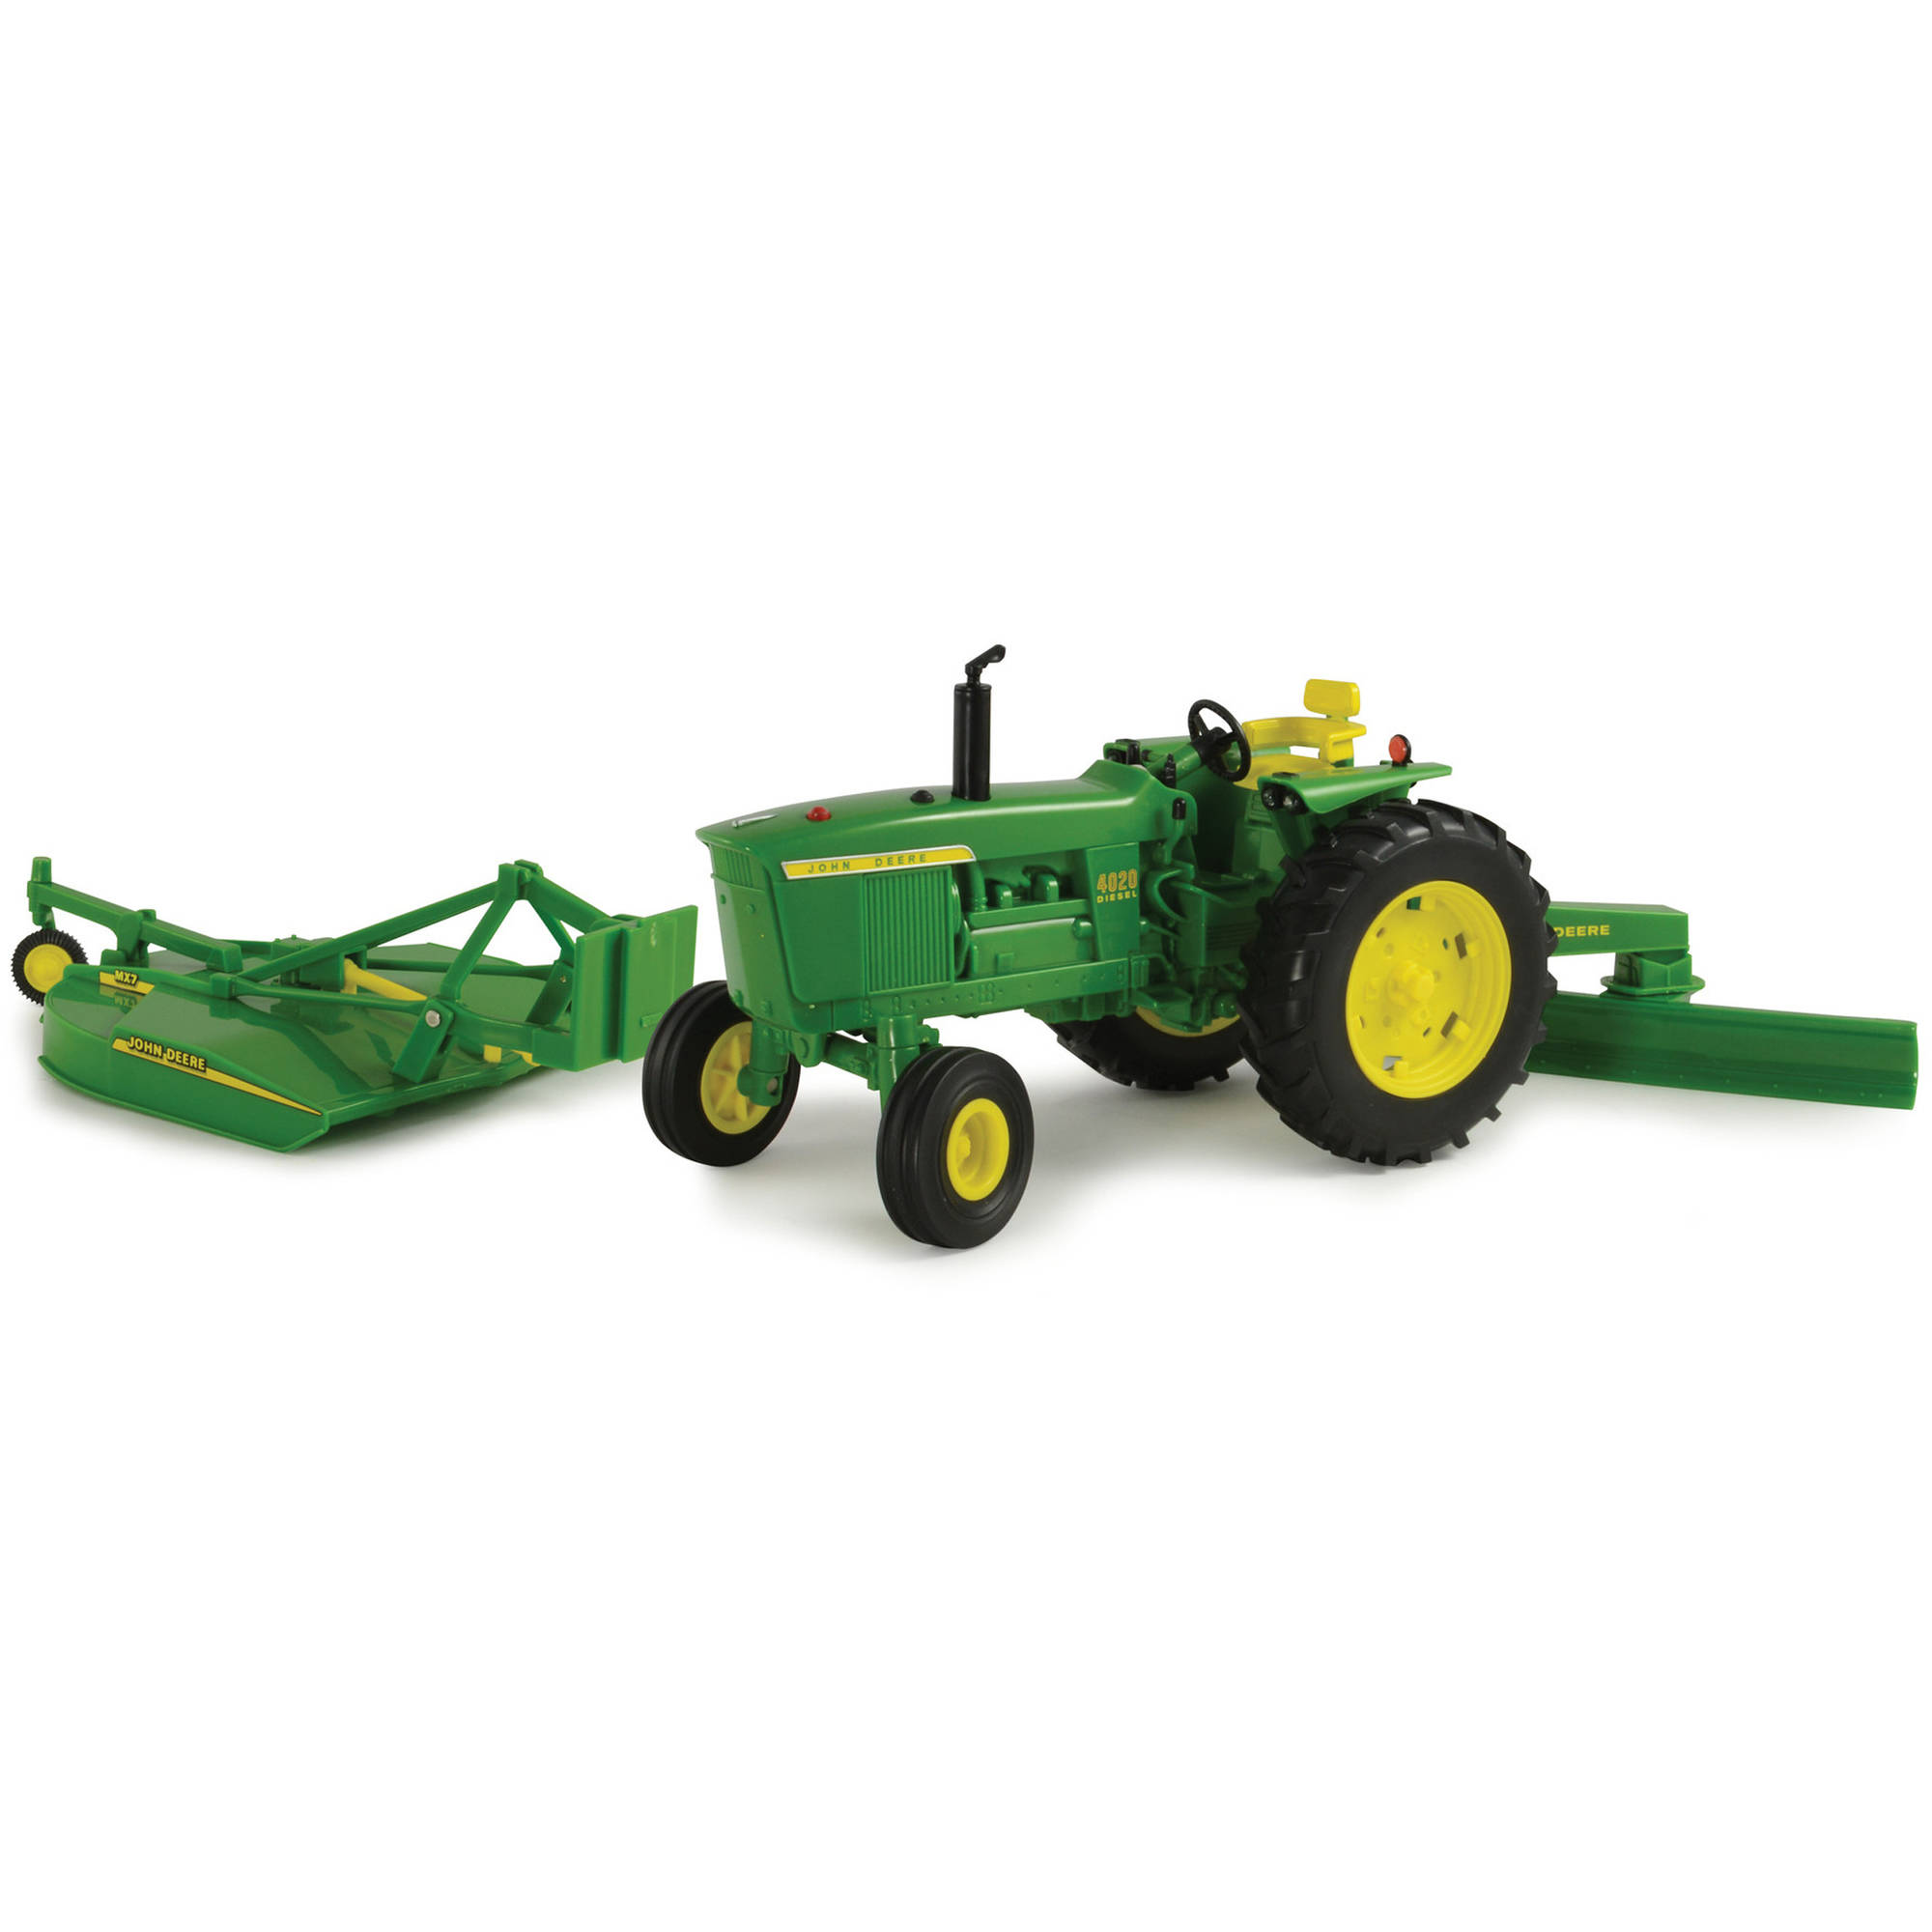 TOMY 1:16 Scale Big Farm John Deere 4020 with Rear Blade and Mower by TOMY